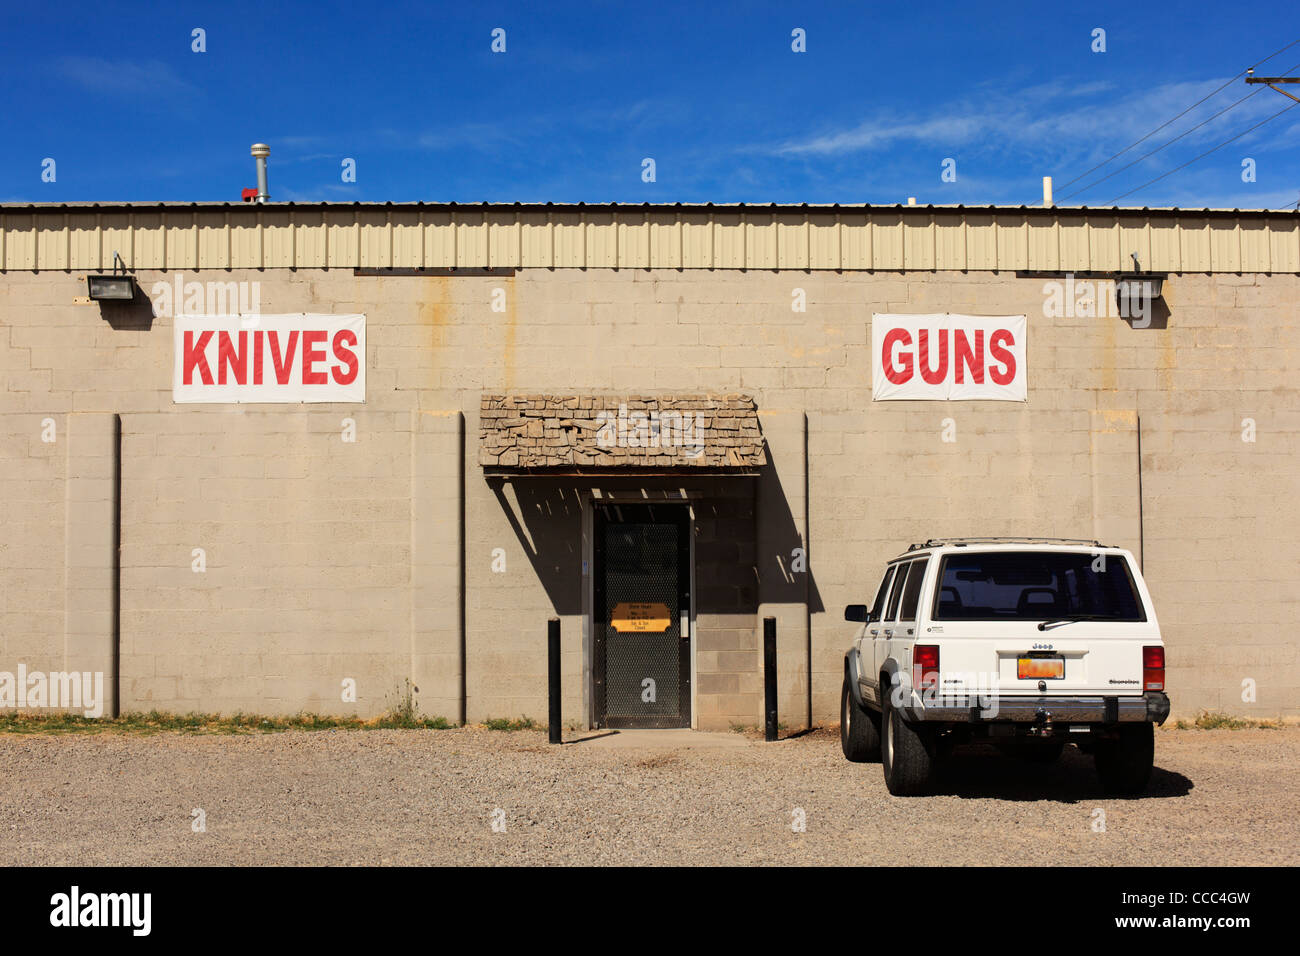 Shop selling knives and guns, New Mexico, USA (vehicle license obscured). Stock Photo